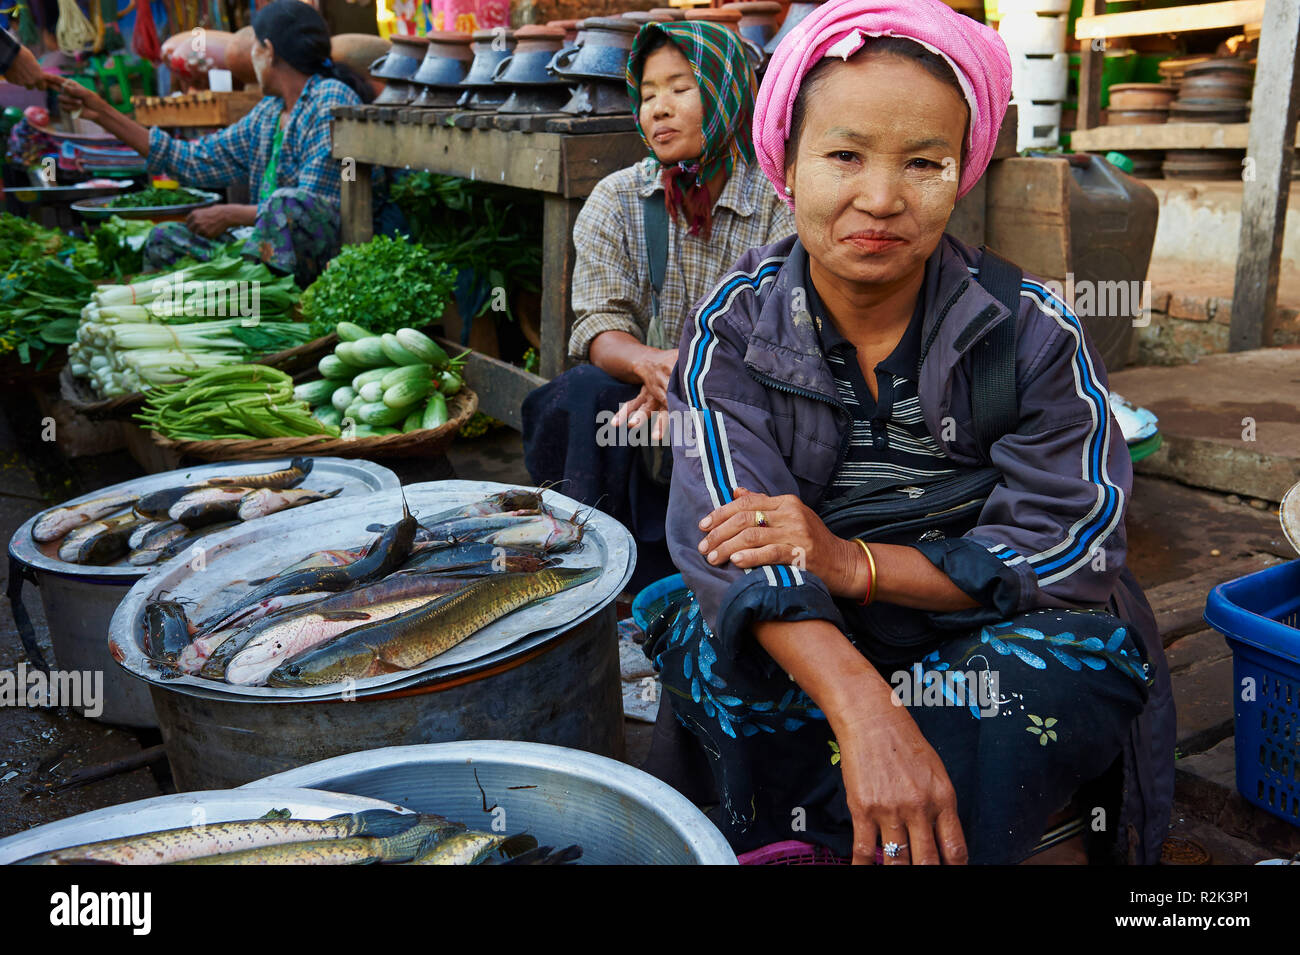 Market stall Hpa-an, Myanmar, Asia, Stock Photo